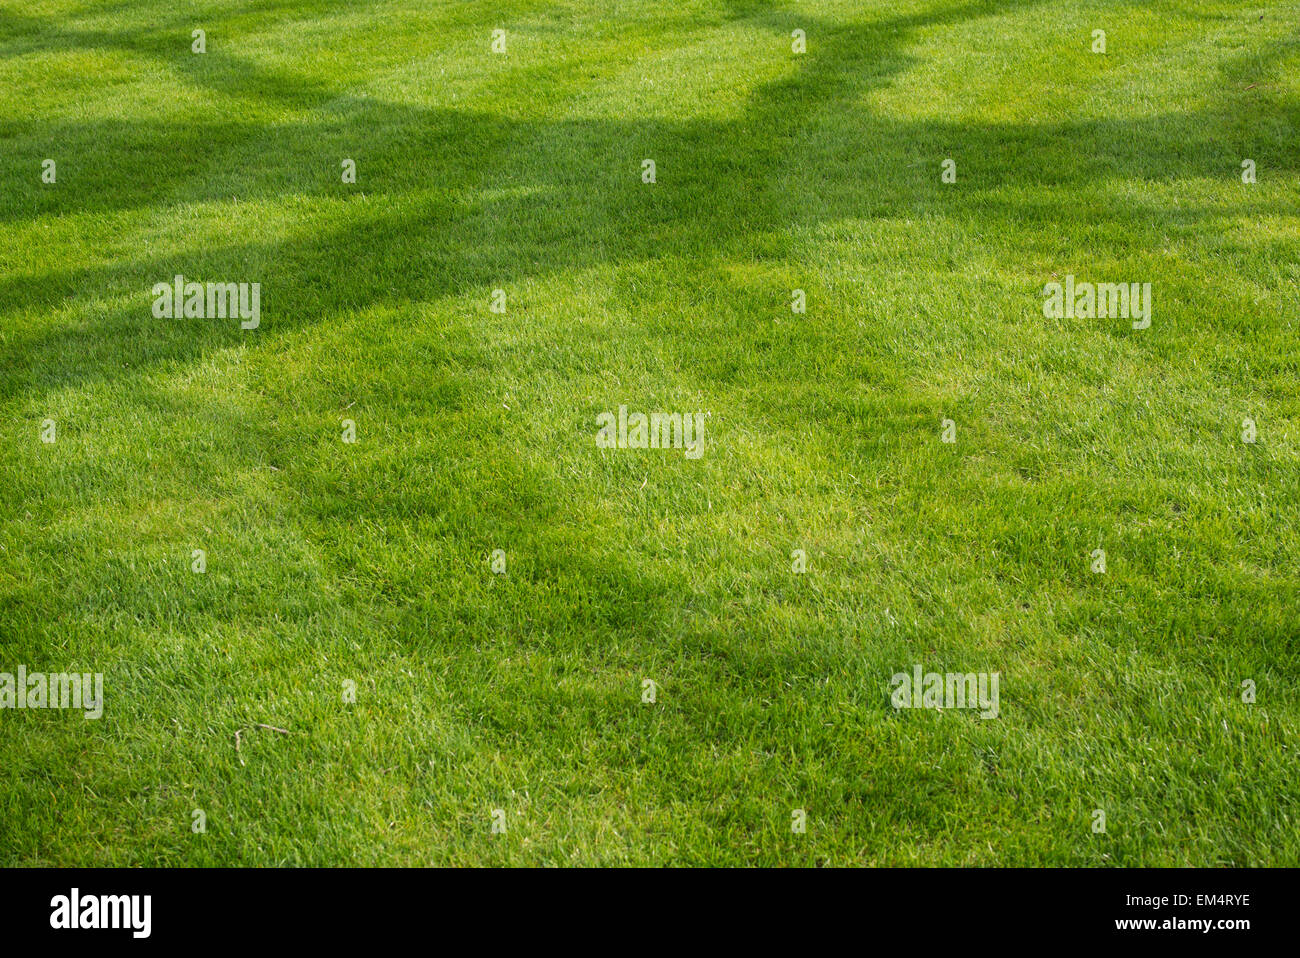 Tree shadow on mown grass lawn - Stock Image